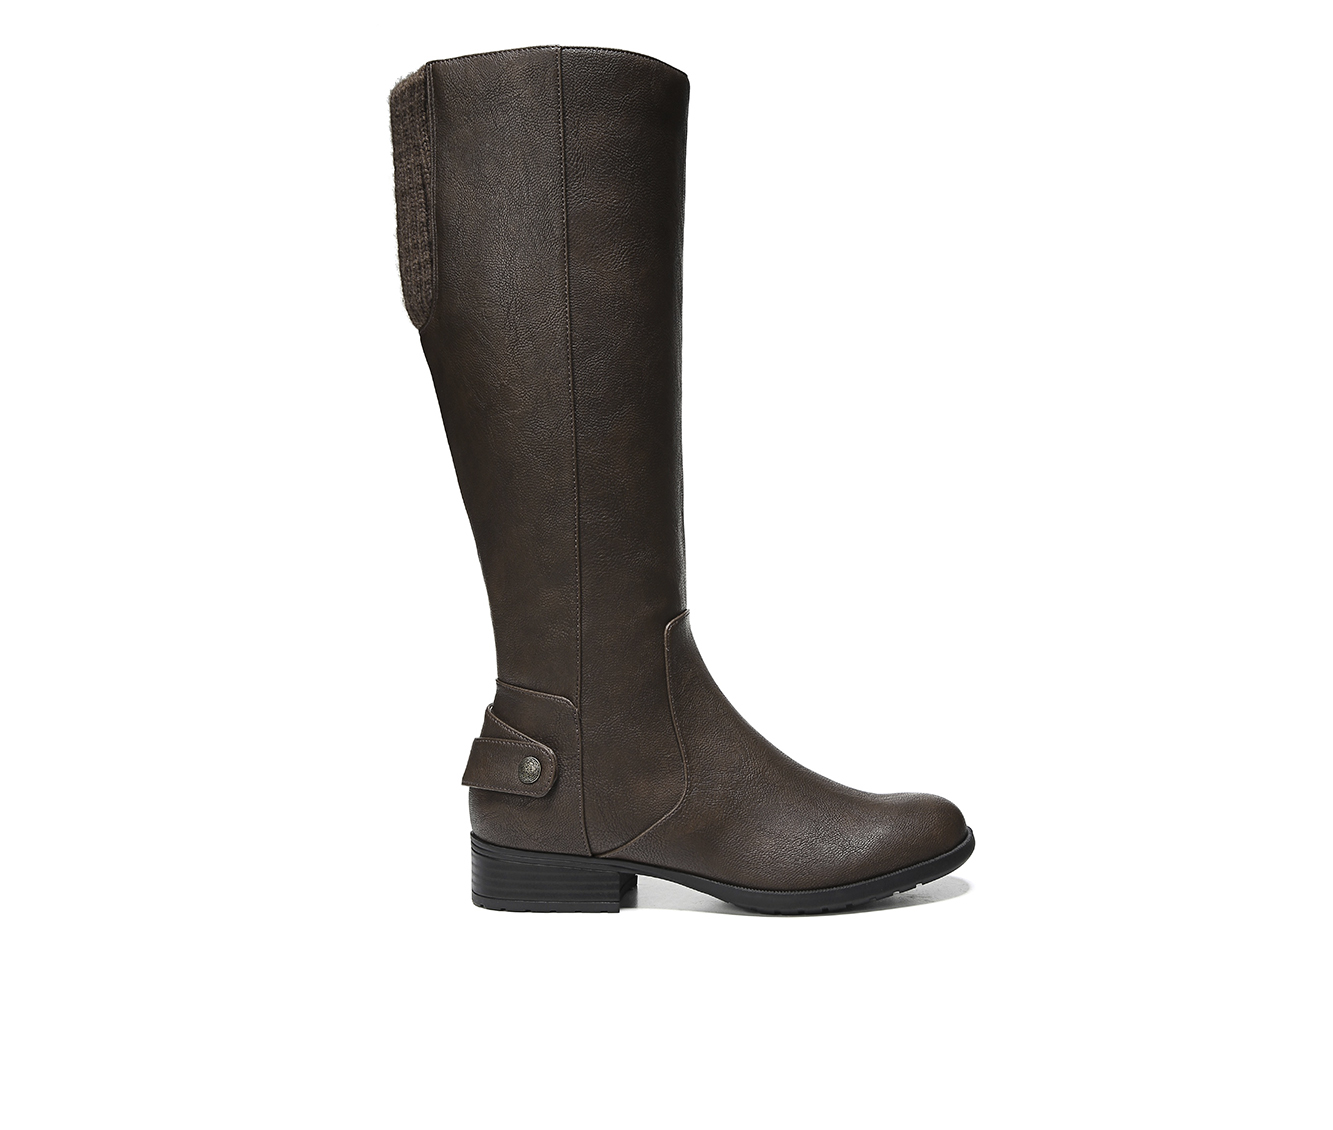 LifeStride X Amy Women's Boots (Brown - Faux Leather)